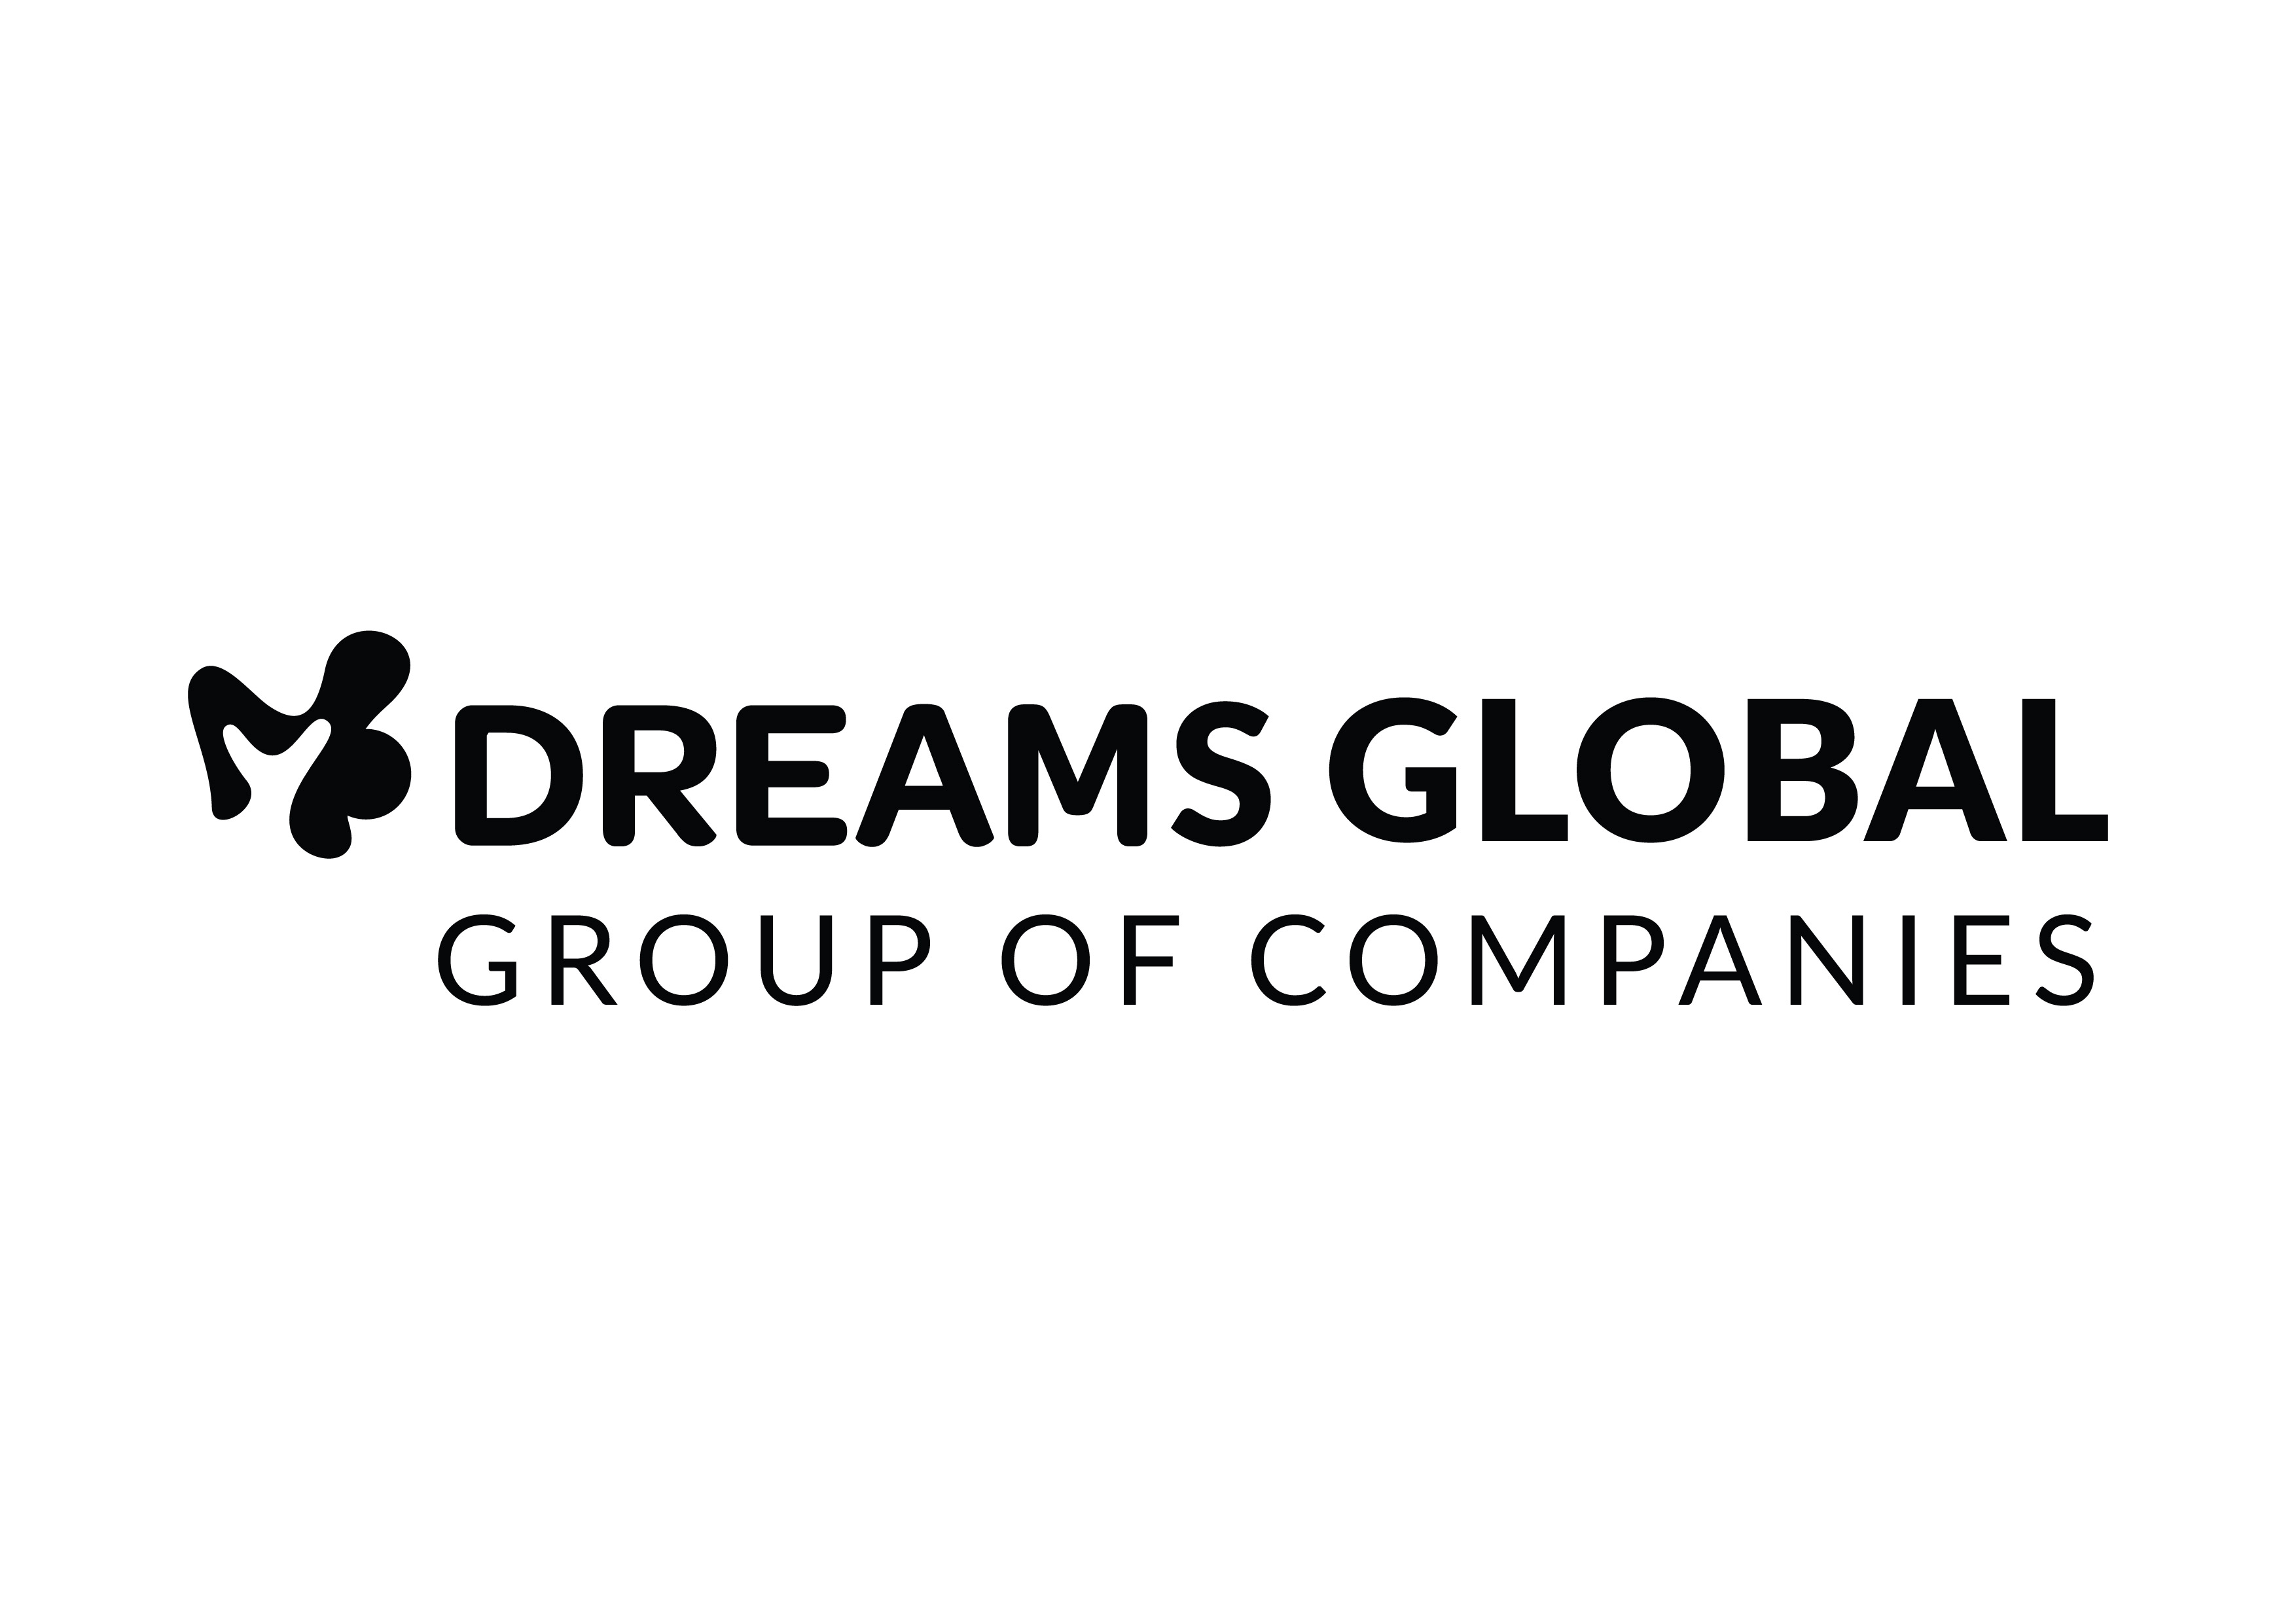 MDREAMS GLOBAL - Corporate level - Primary Logo - Var B